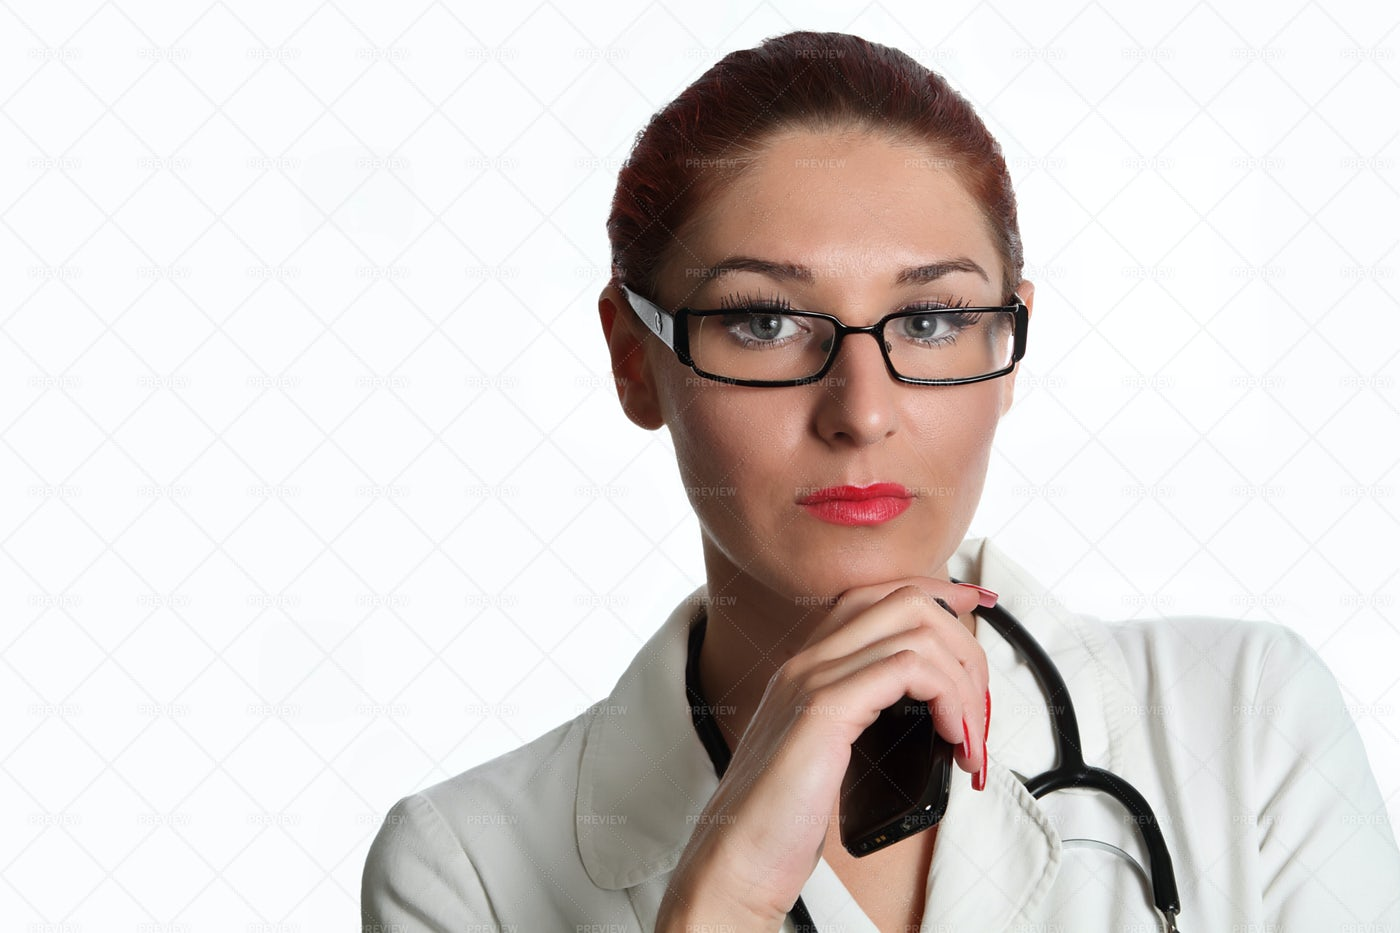 Doctor Holding A Phone: Stock Photos